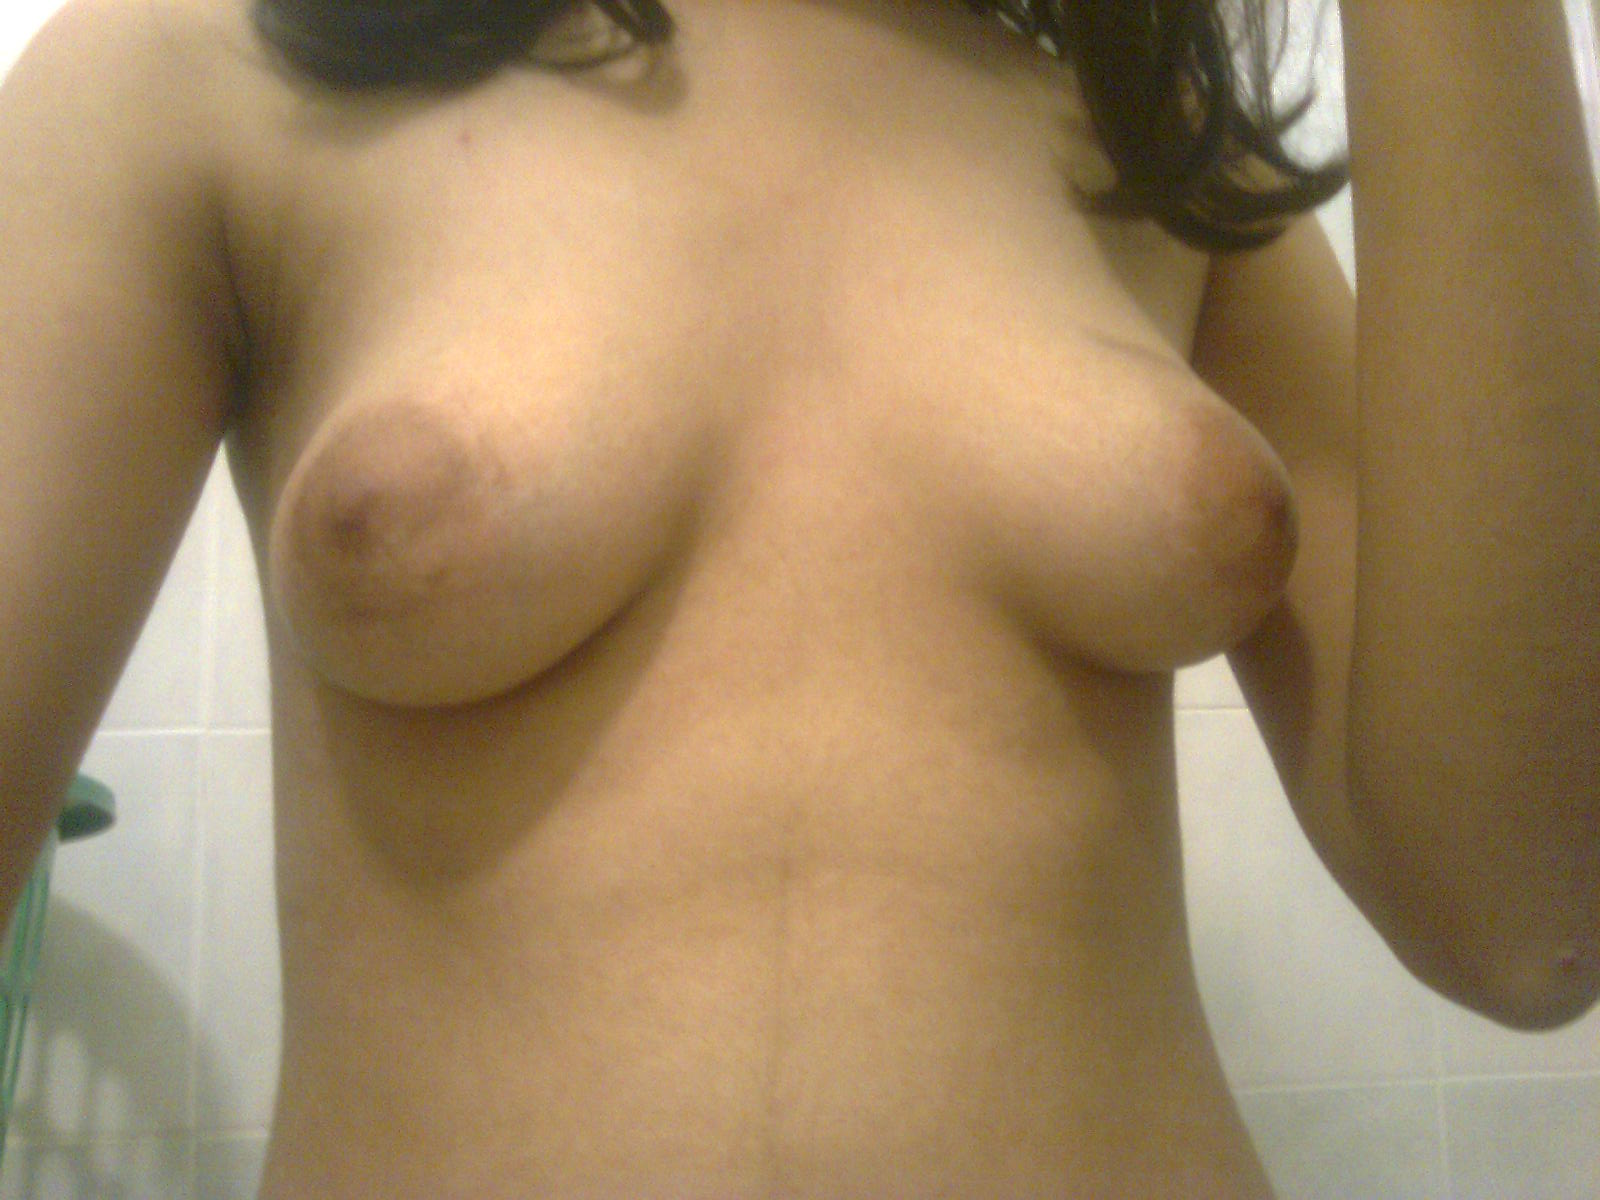 19 Year Old Indian Girlfriends Pussy And Boobs Pics - Real -8772